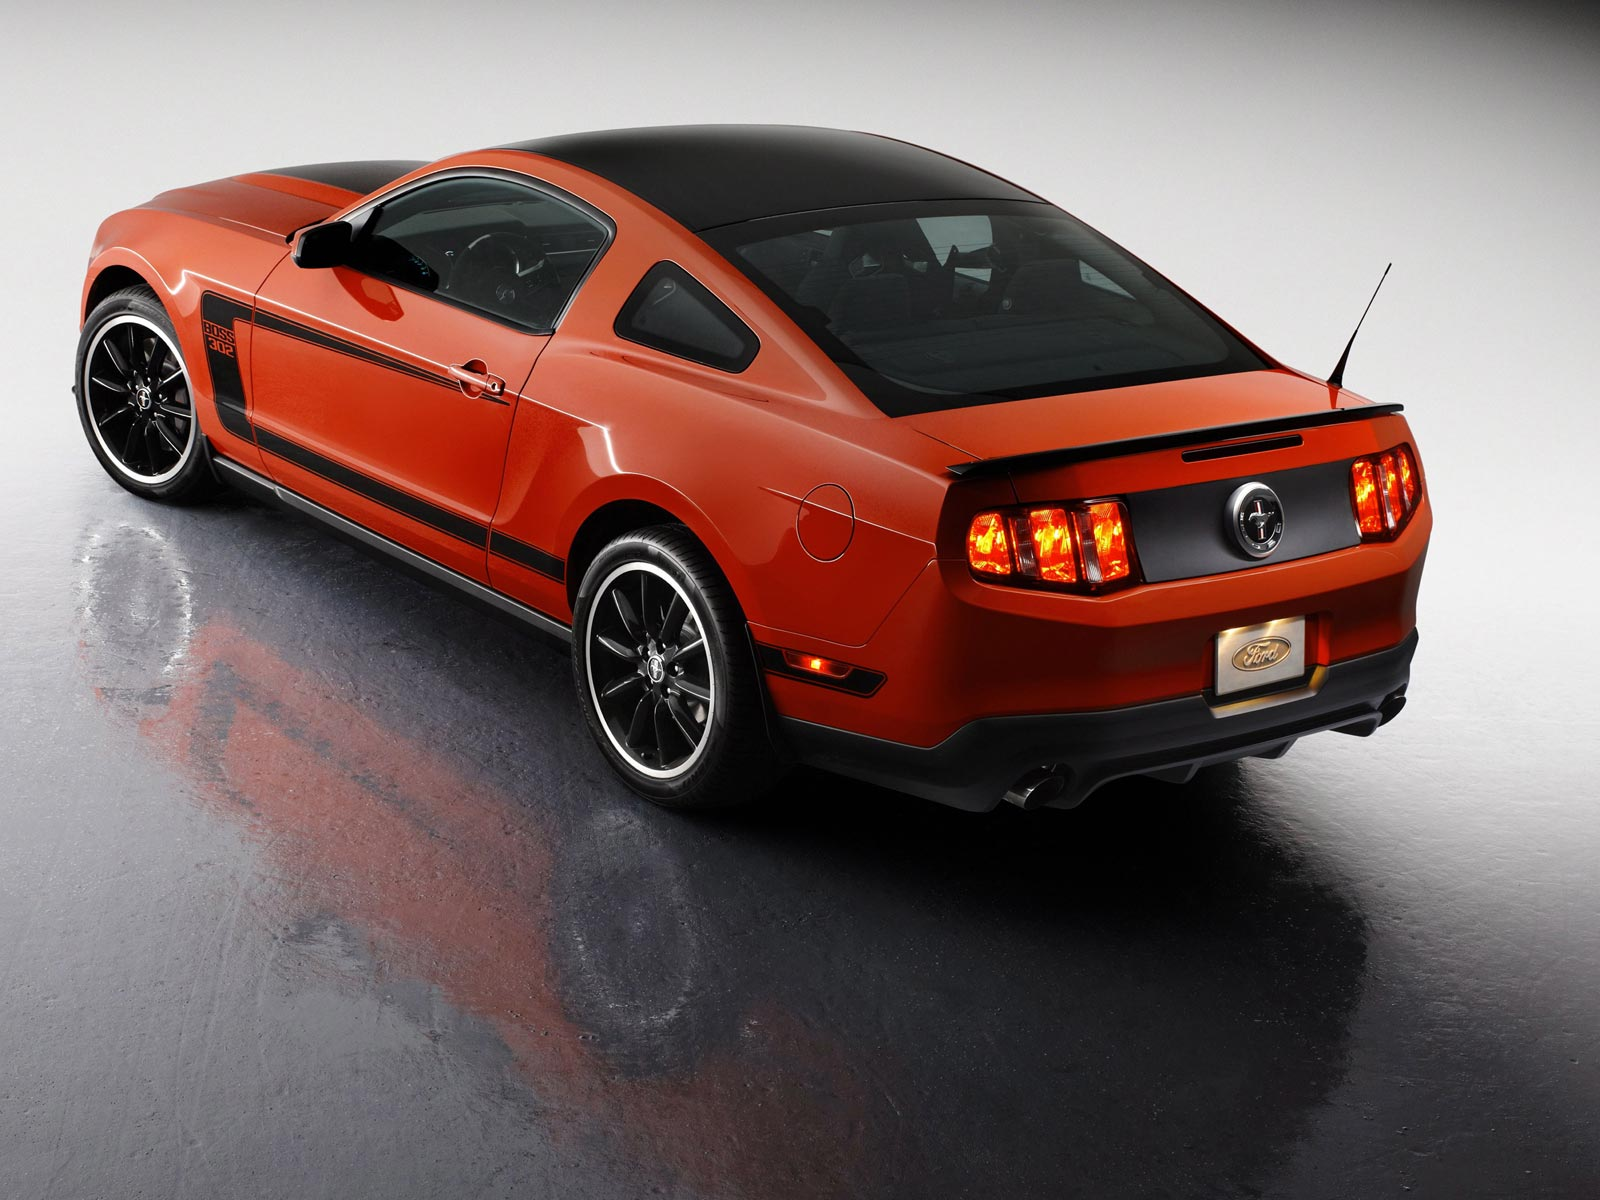 ford mustang 2013 shelby gt500 super snake 850 ps. Black Bedroom Furniture Sets. Home Design Ideas